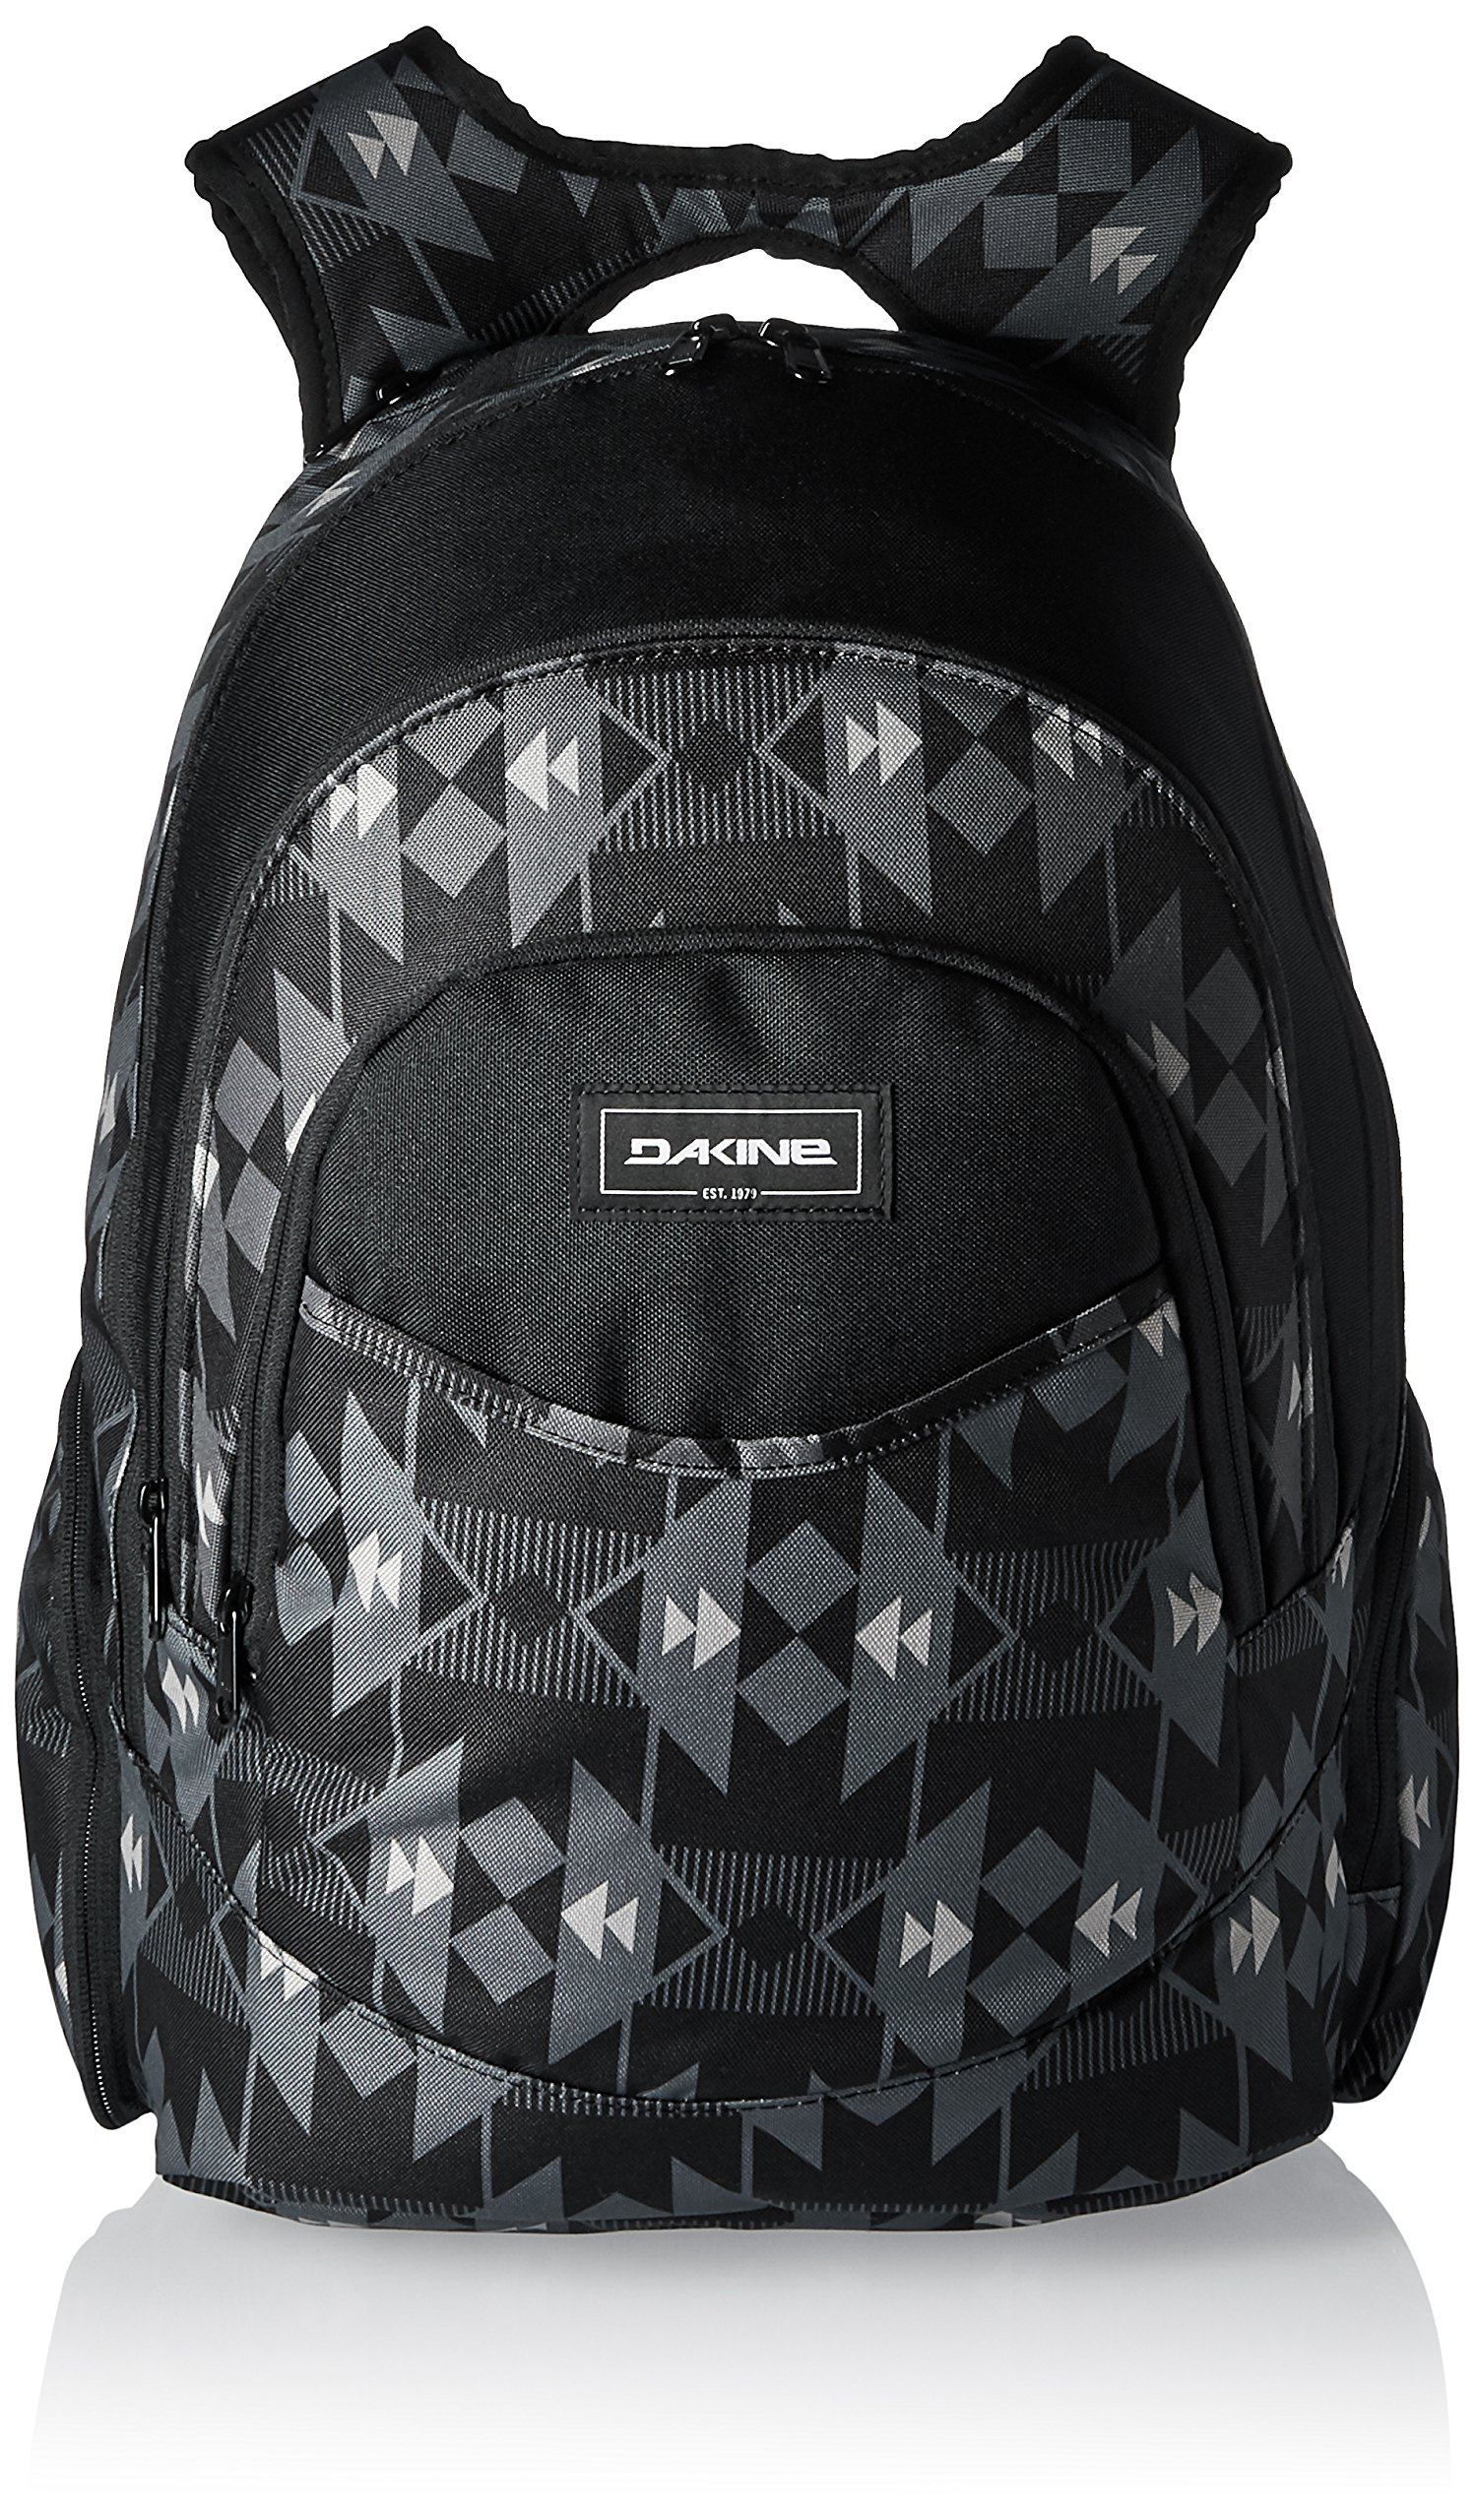 Dakine - Prom 25L Woman's Backpack - Padded Laptop Storage - Insulated Cooler Pocket - Durable Construction - 18'' x 12'' x 9''